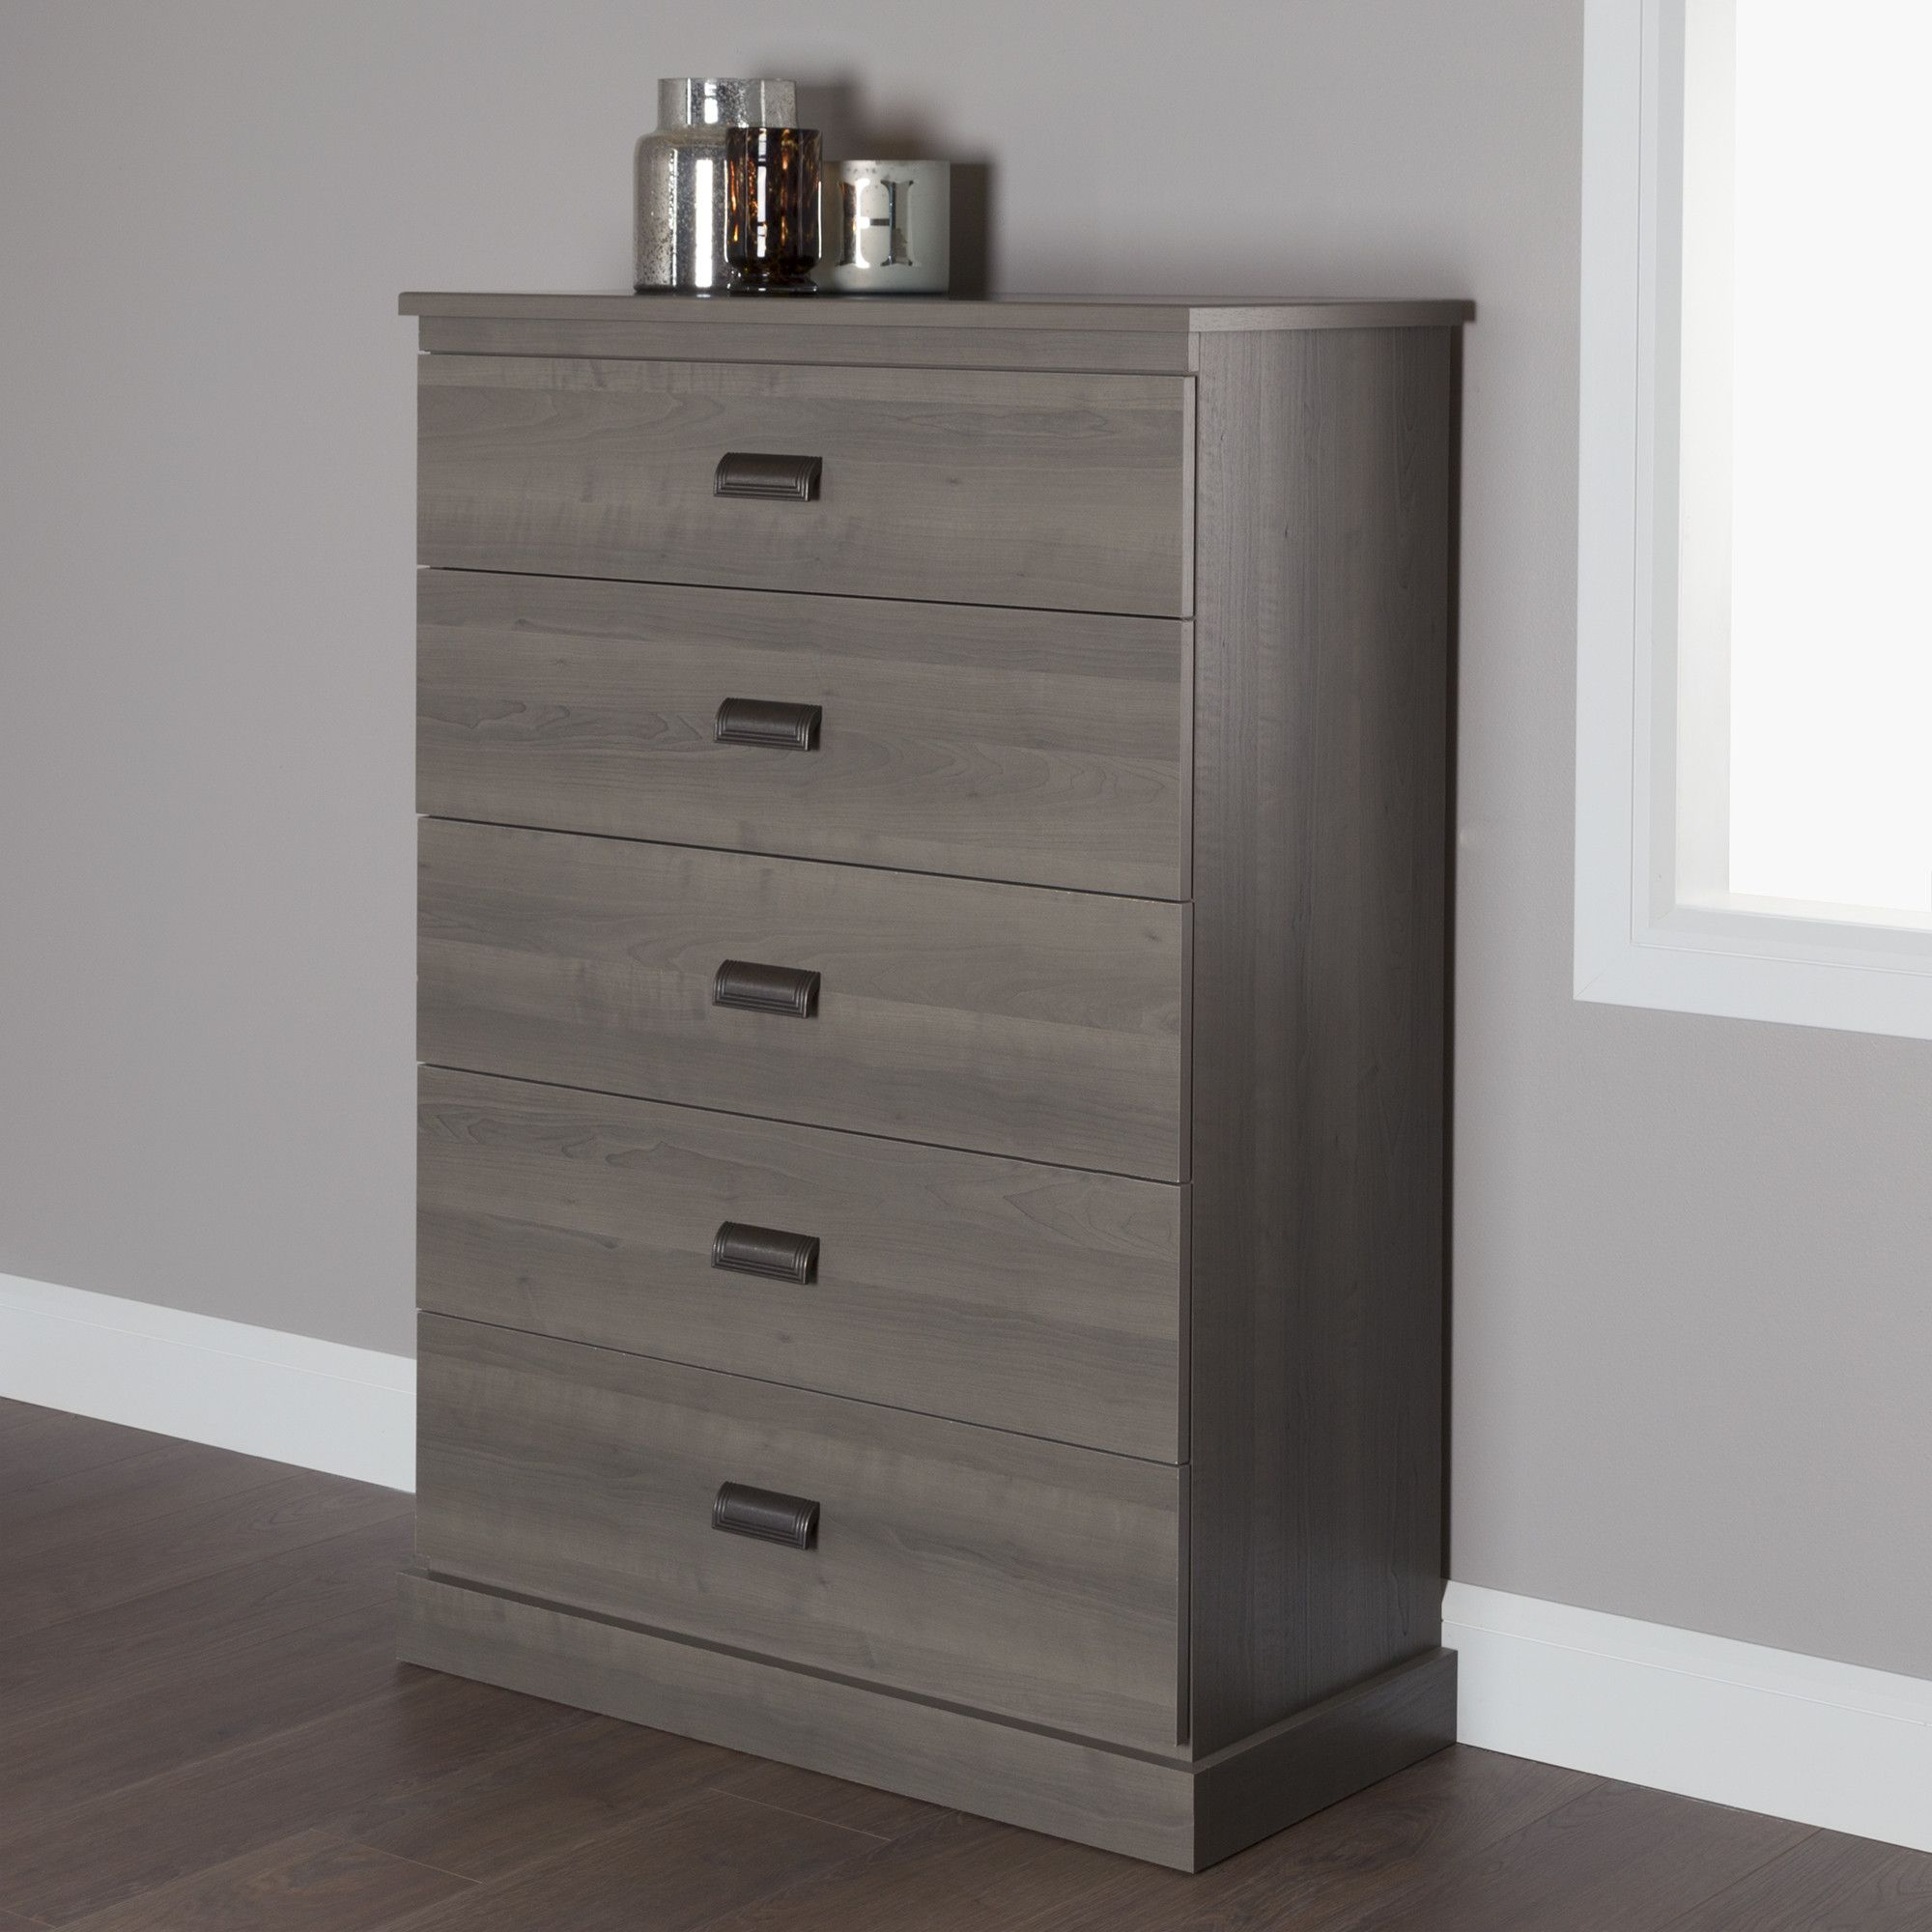 Shop Wayfair For Dressers To Match Every Style And Budget Enjoy Free Shipping On Most Stuff Even Big Stuff Chest Of Drawers Weathered Oak 5 Drawer Chest [ 2000 x 2000 Pixel ]